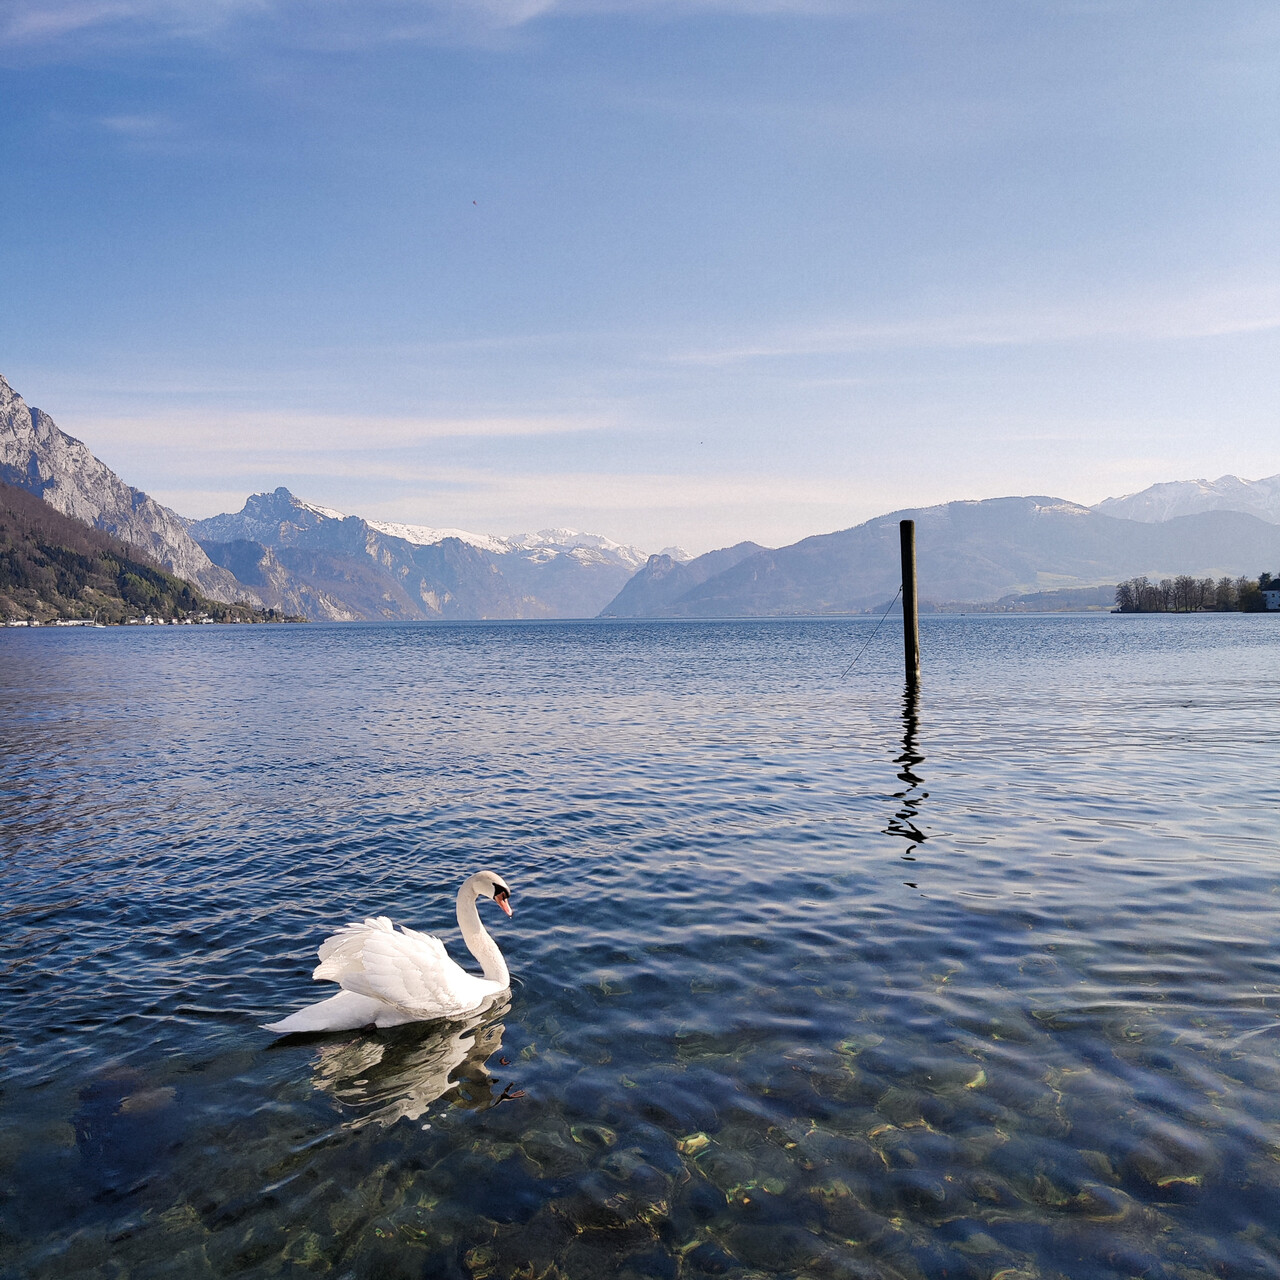 photo of a white swan swimming in a lake, with mountains in the background.